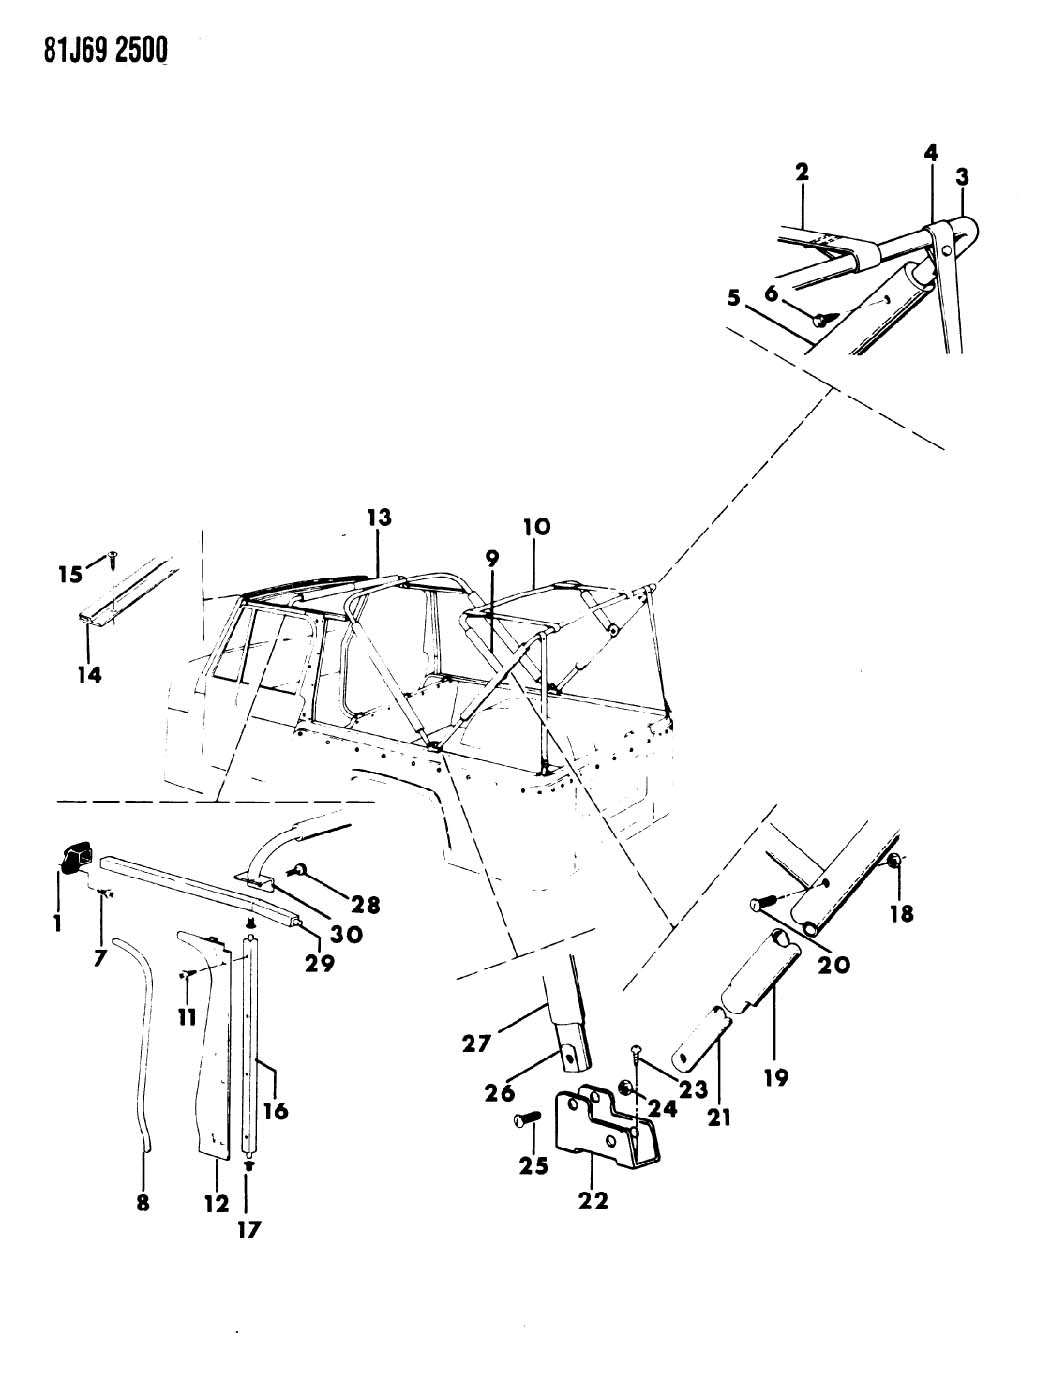 Jeep Wrangler Unlimited Soft Top Parts Diagram Jeep